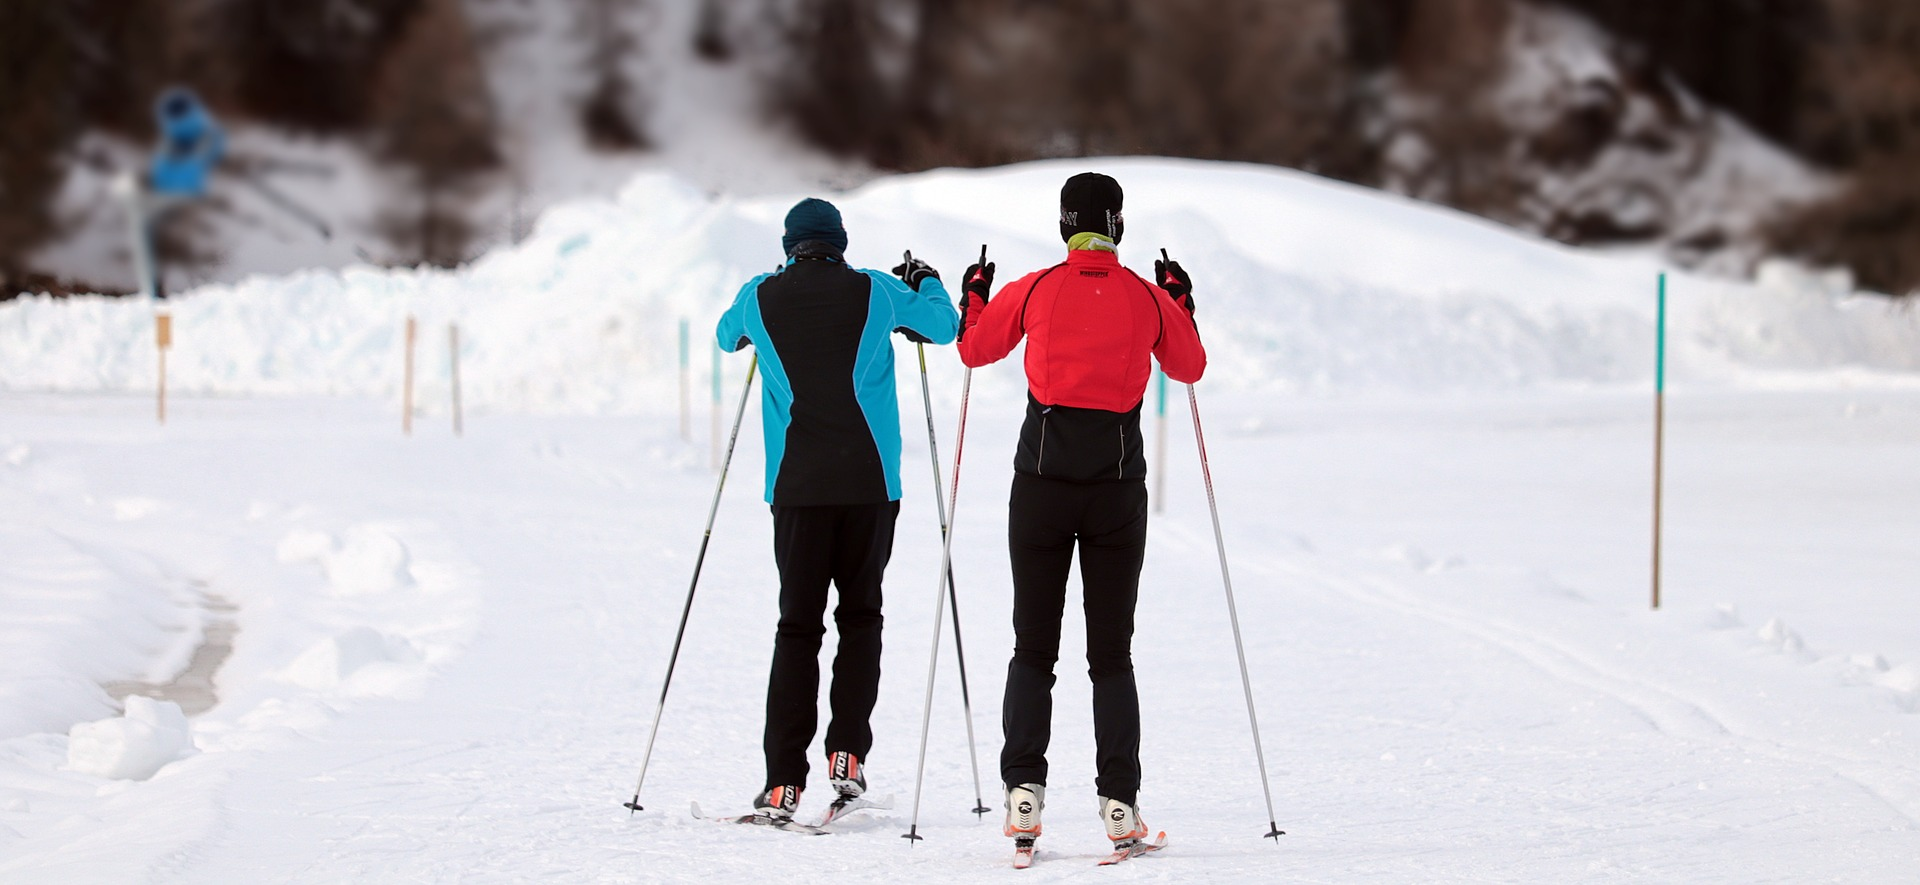 A pair of skiiers following a snowy path.